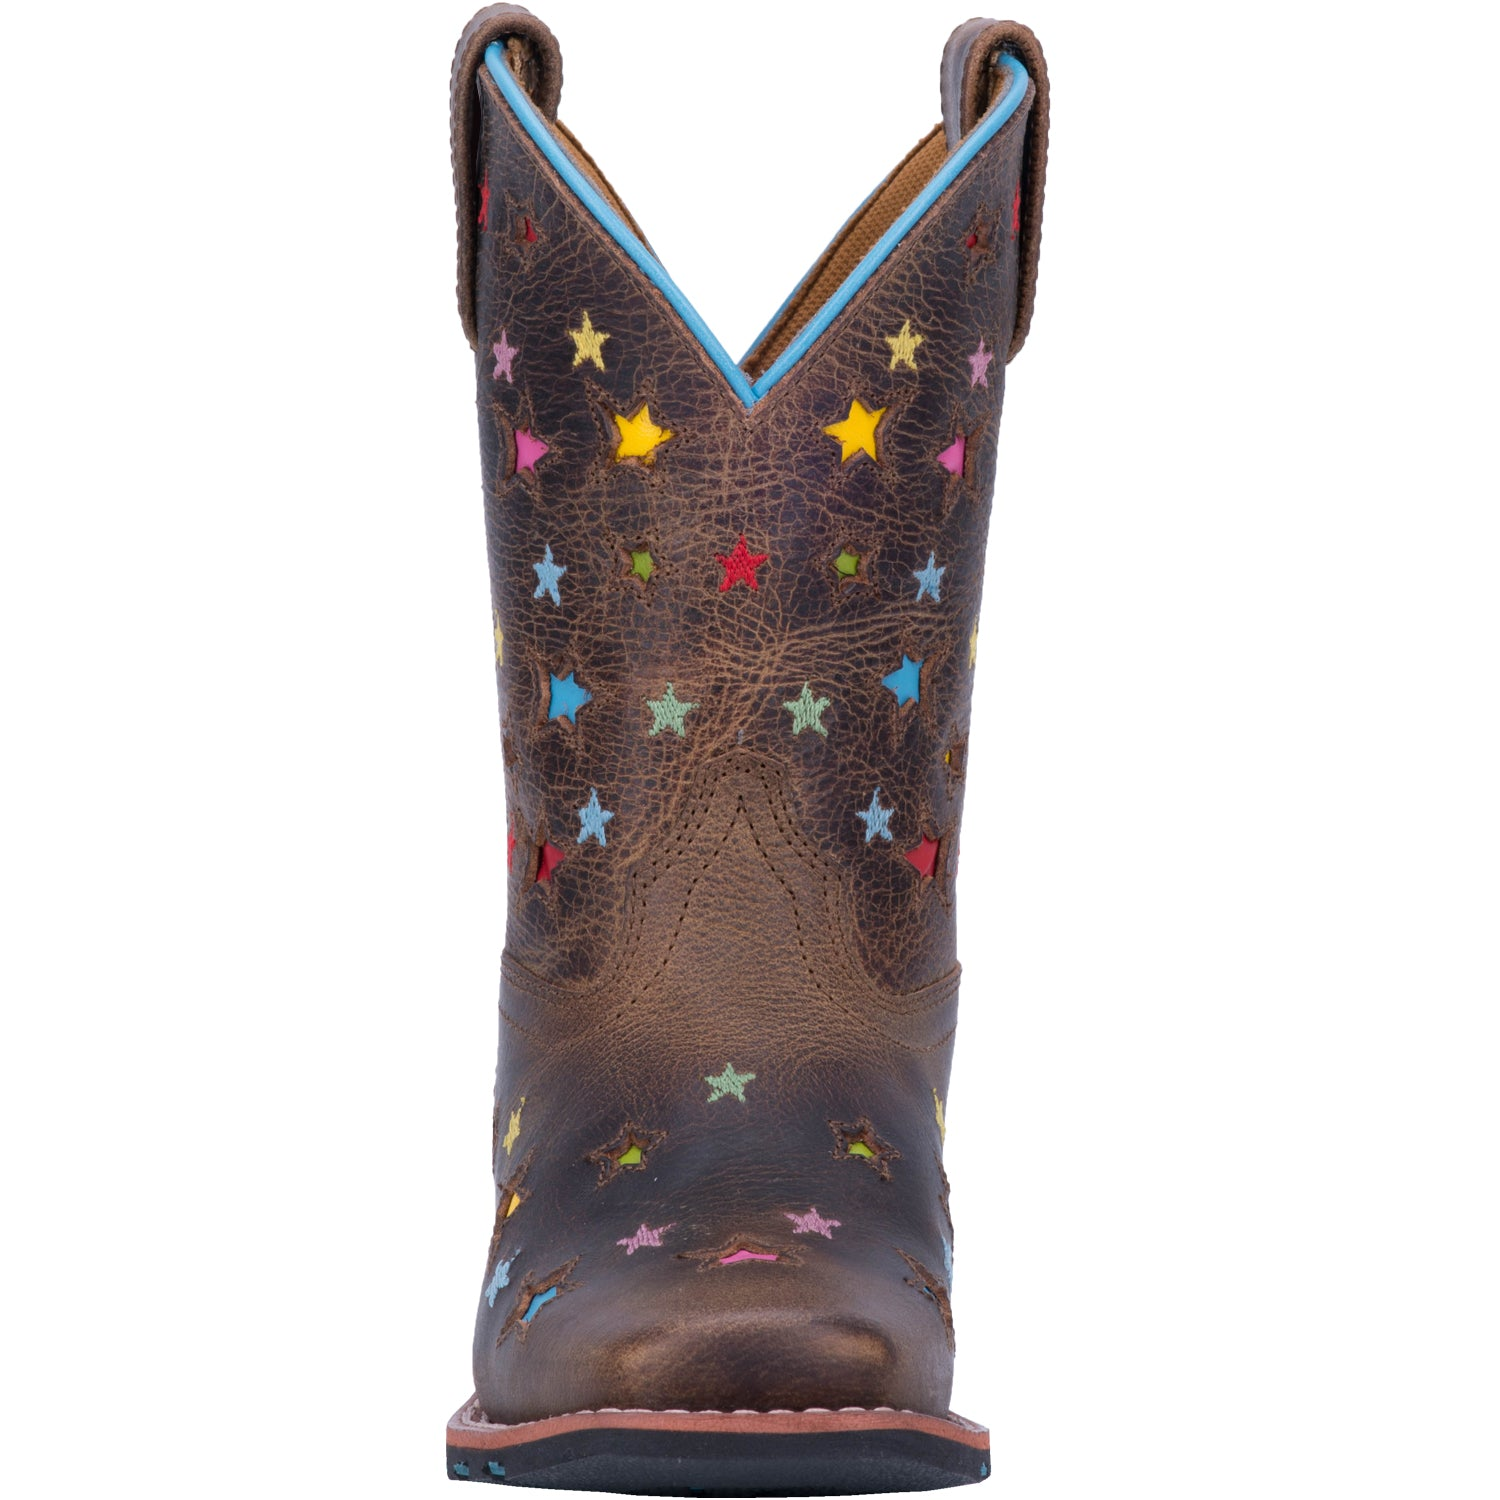 STARLETT LEATHER CHILDREN'S BOOT 15521811169322